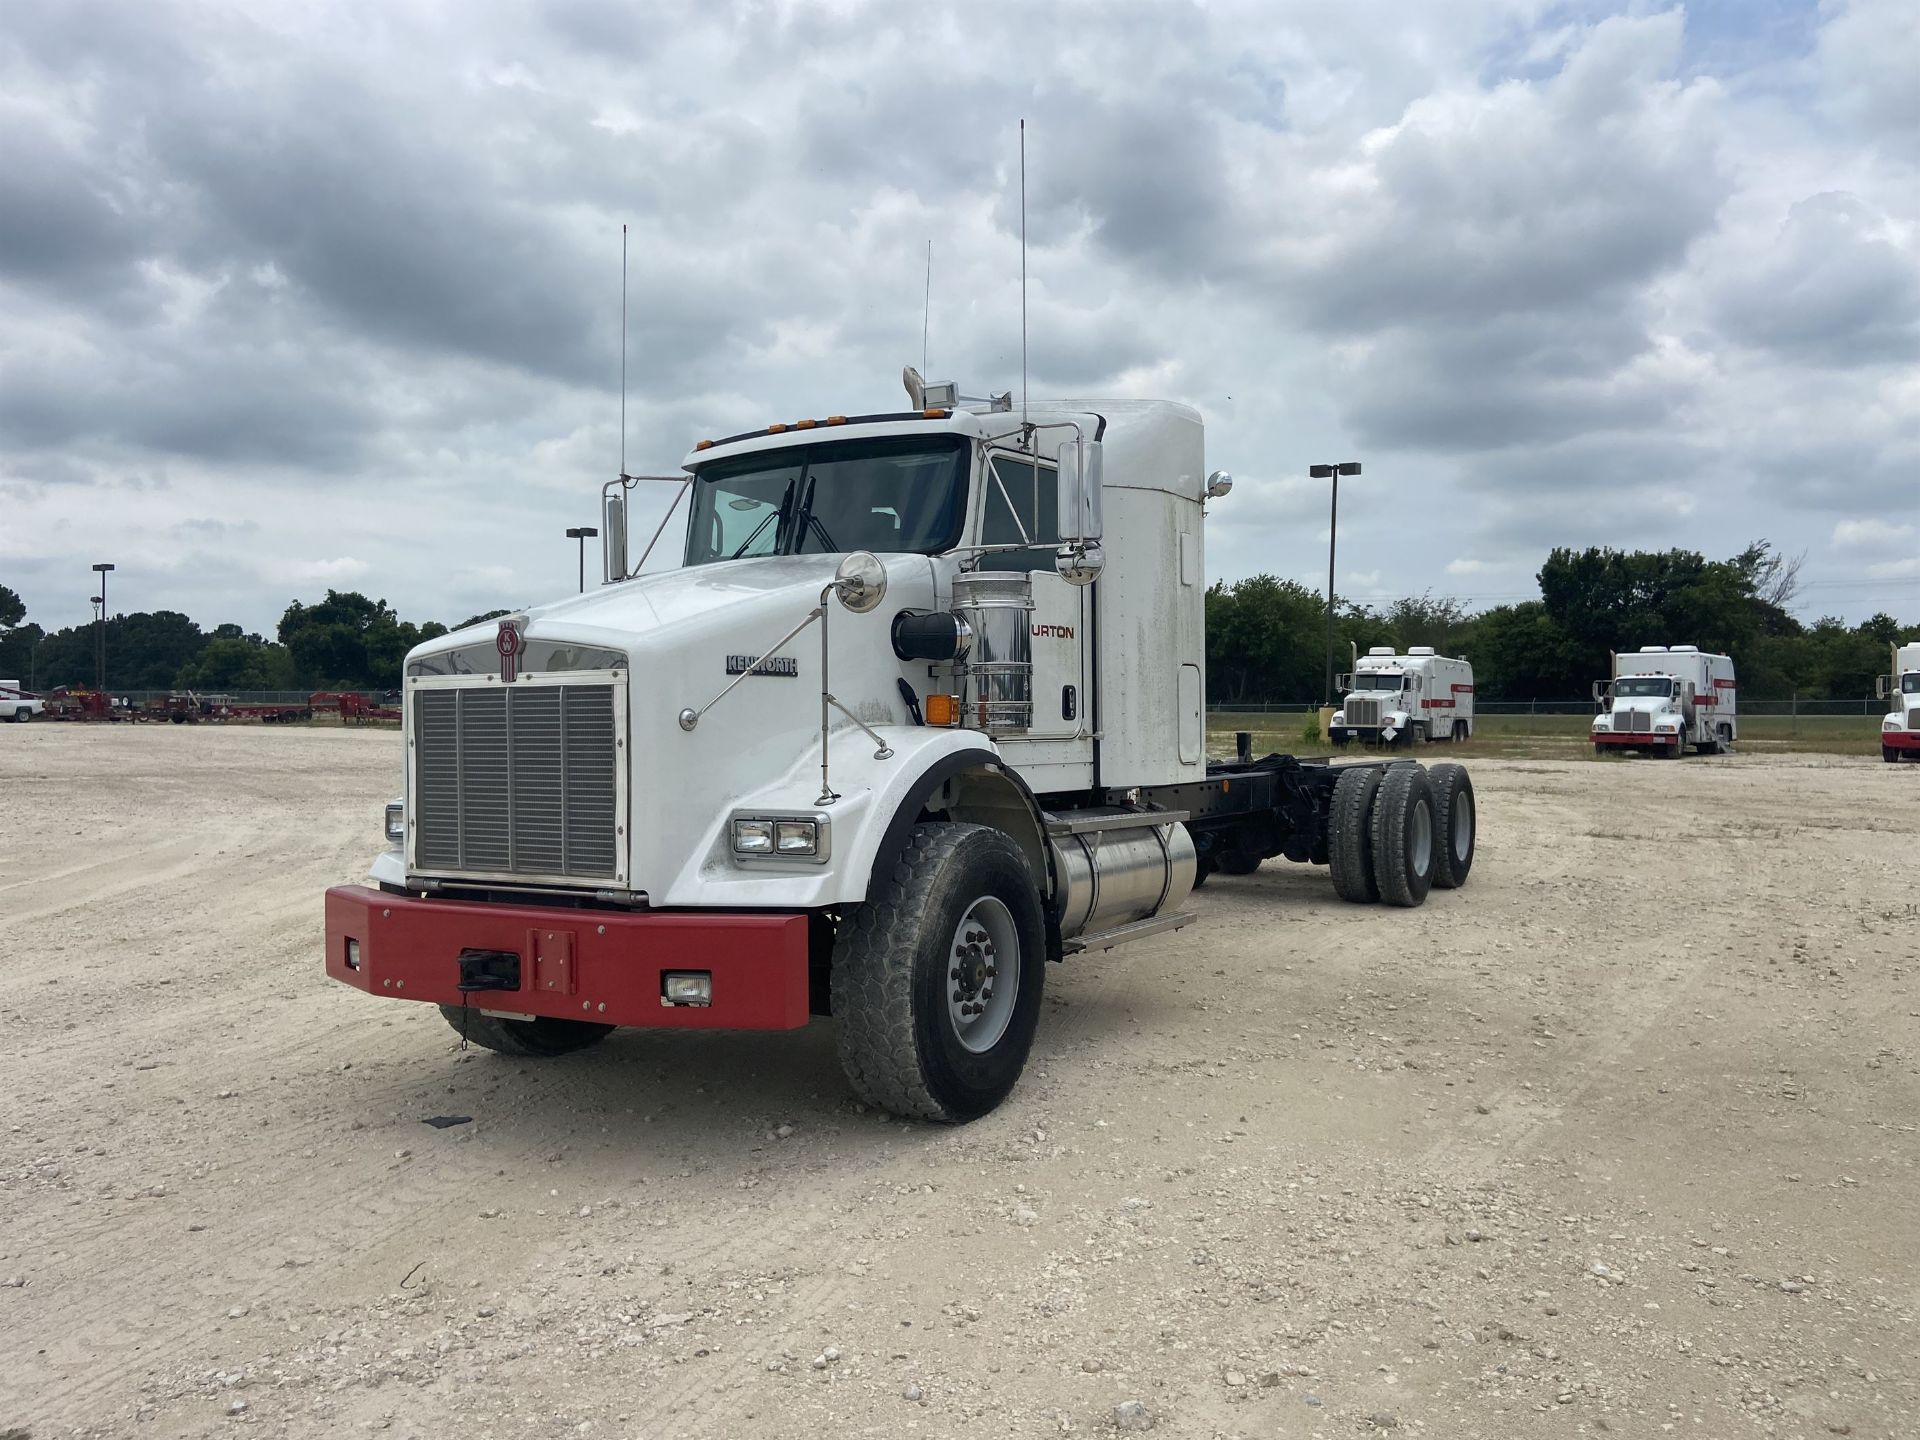 2015 KENWORTH T800 Cab and Chassis, VIN # 1NKDL00X2FR451214, 379 HP ISME 385 Engine, FRO14210C